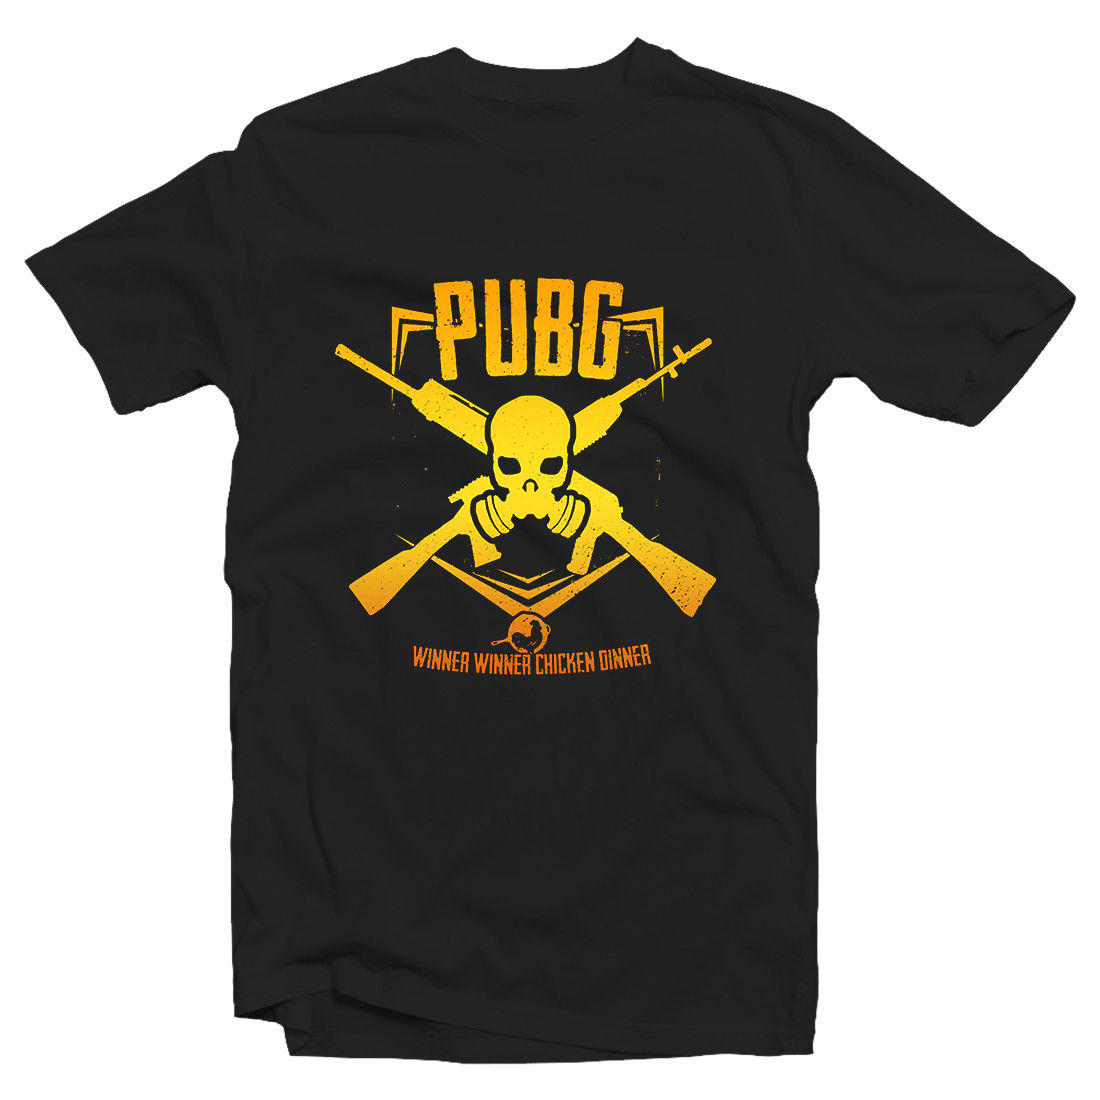 Winner Winner Chicken Dinner Tshirt SKULL- PUBG Player Unknown 100% cotton tee shirt,  tops wholesale tee tops wholesale tee